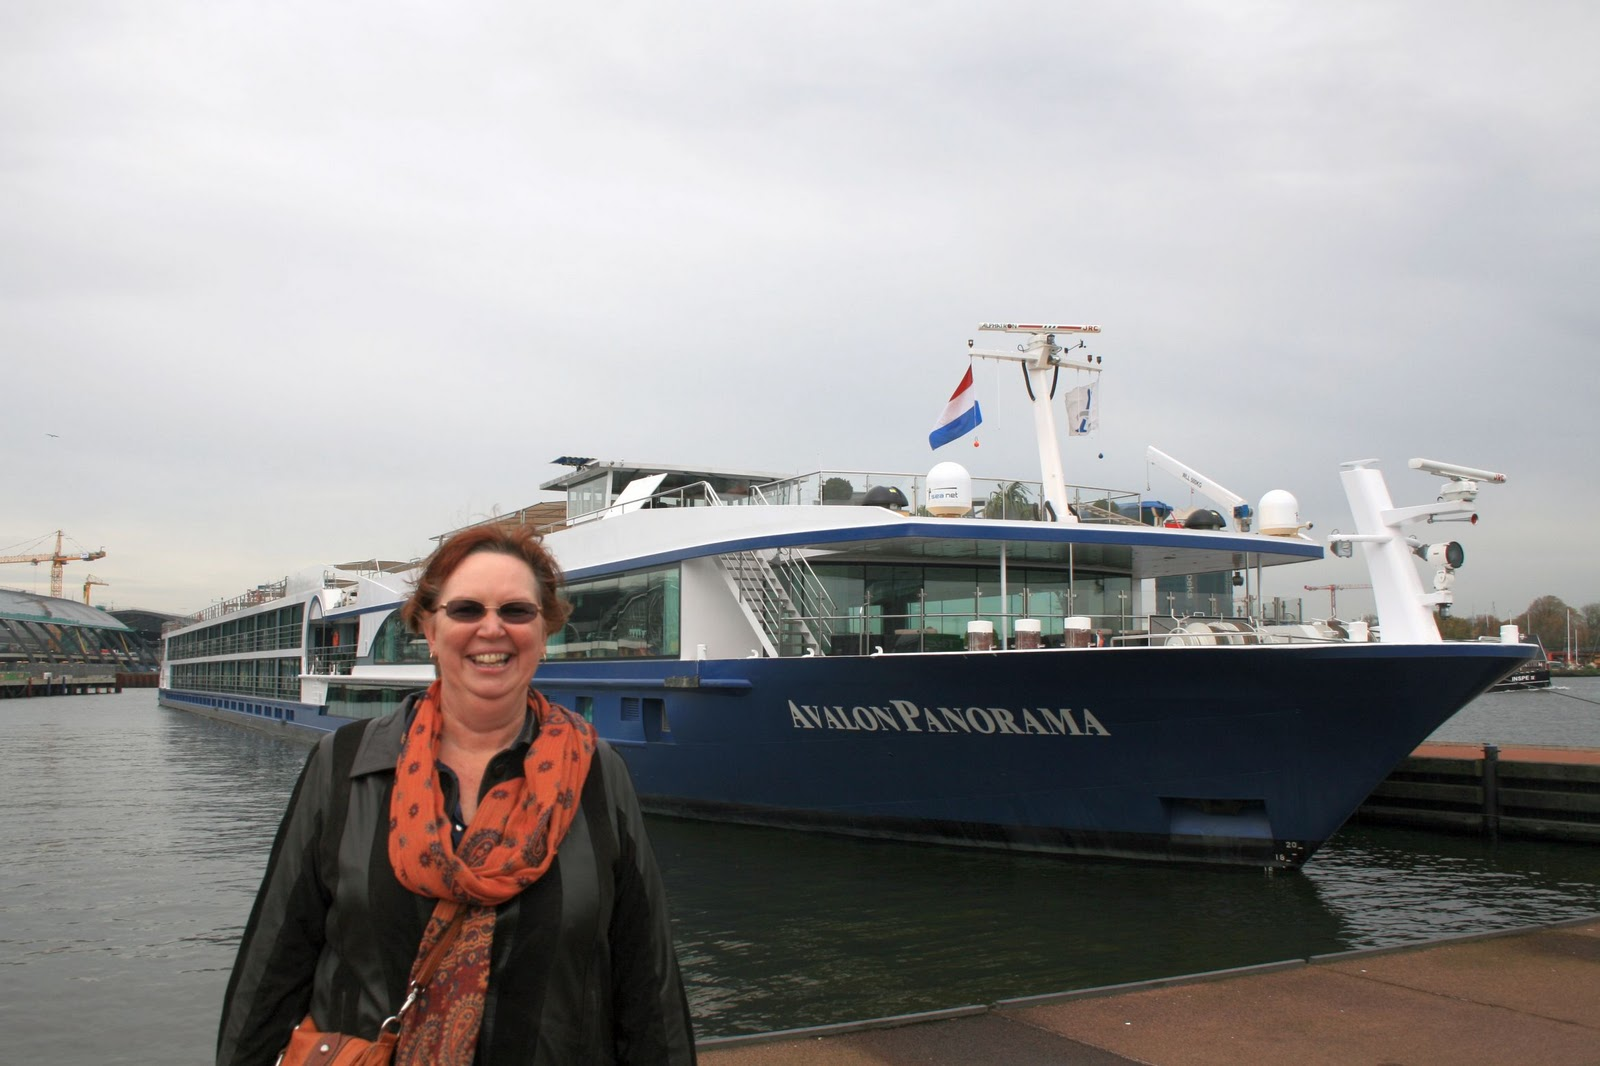 danube singles over 50 Read our expert reviews and user reviews of the most popular carnival cruises for singles over 50 here, including features lists, star ratings, pricing information, videos, screenshots and.